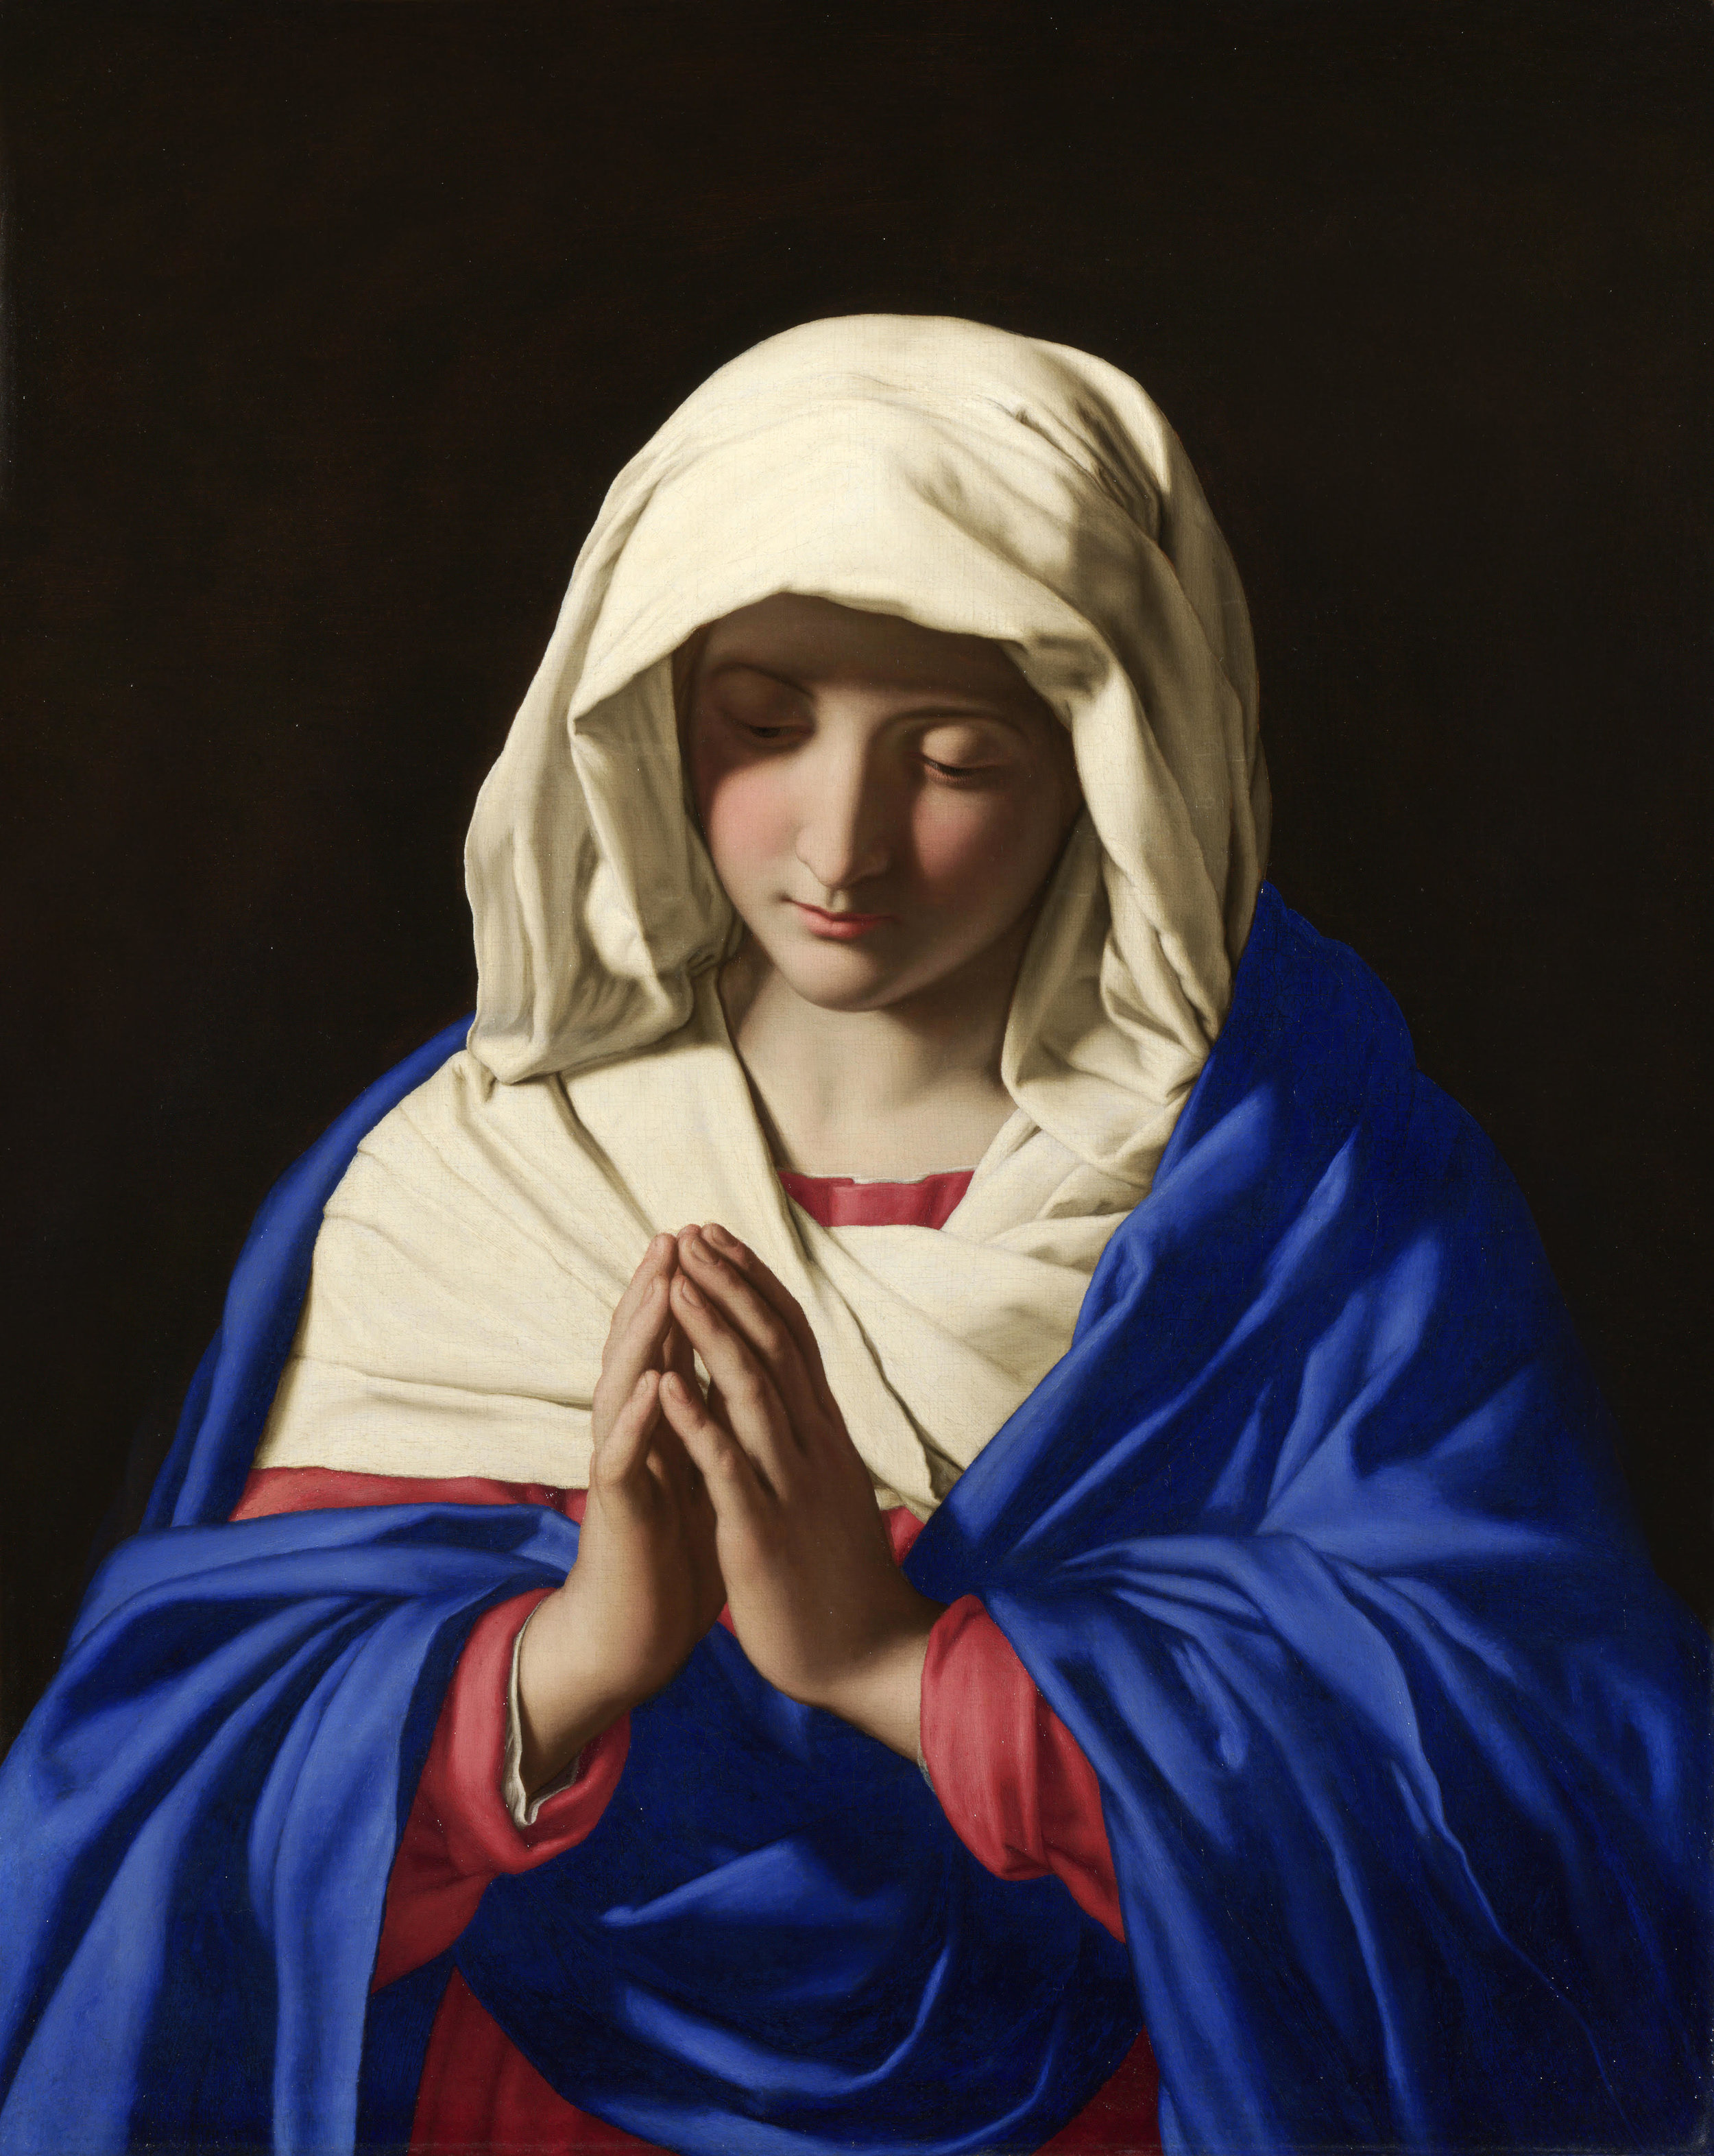 Sassoferrato - The virgin in prayer (1640-1650)